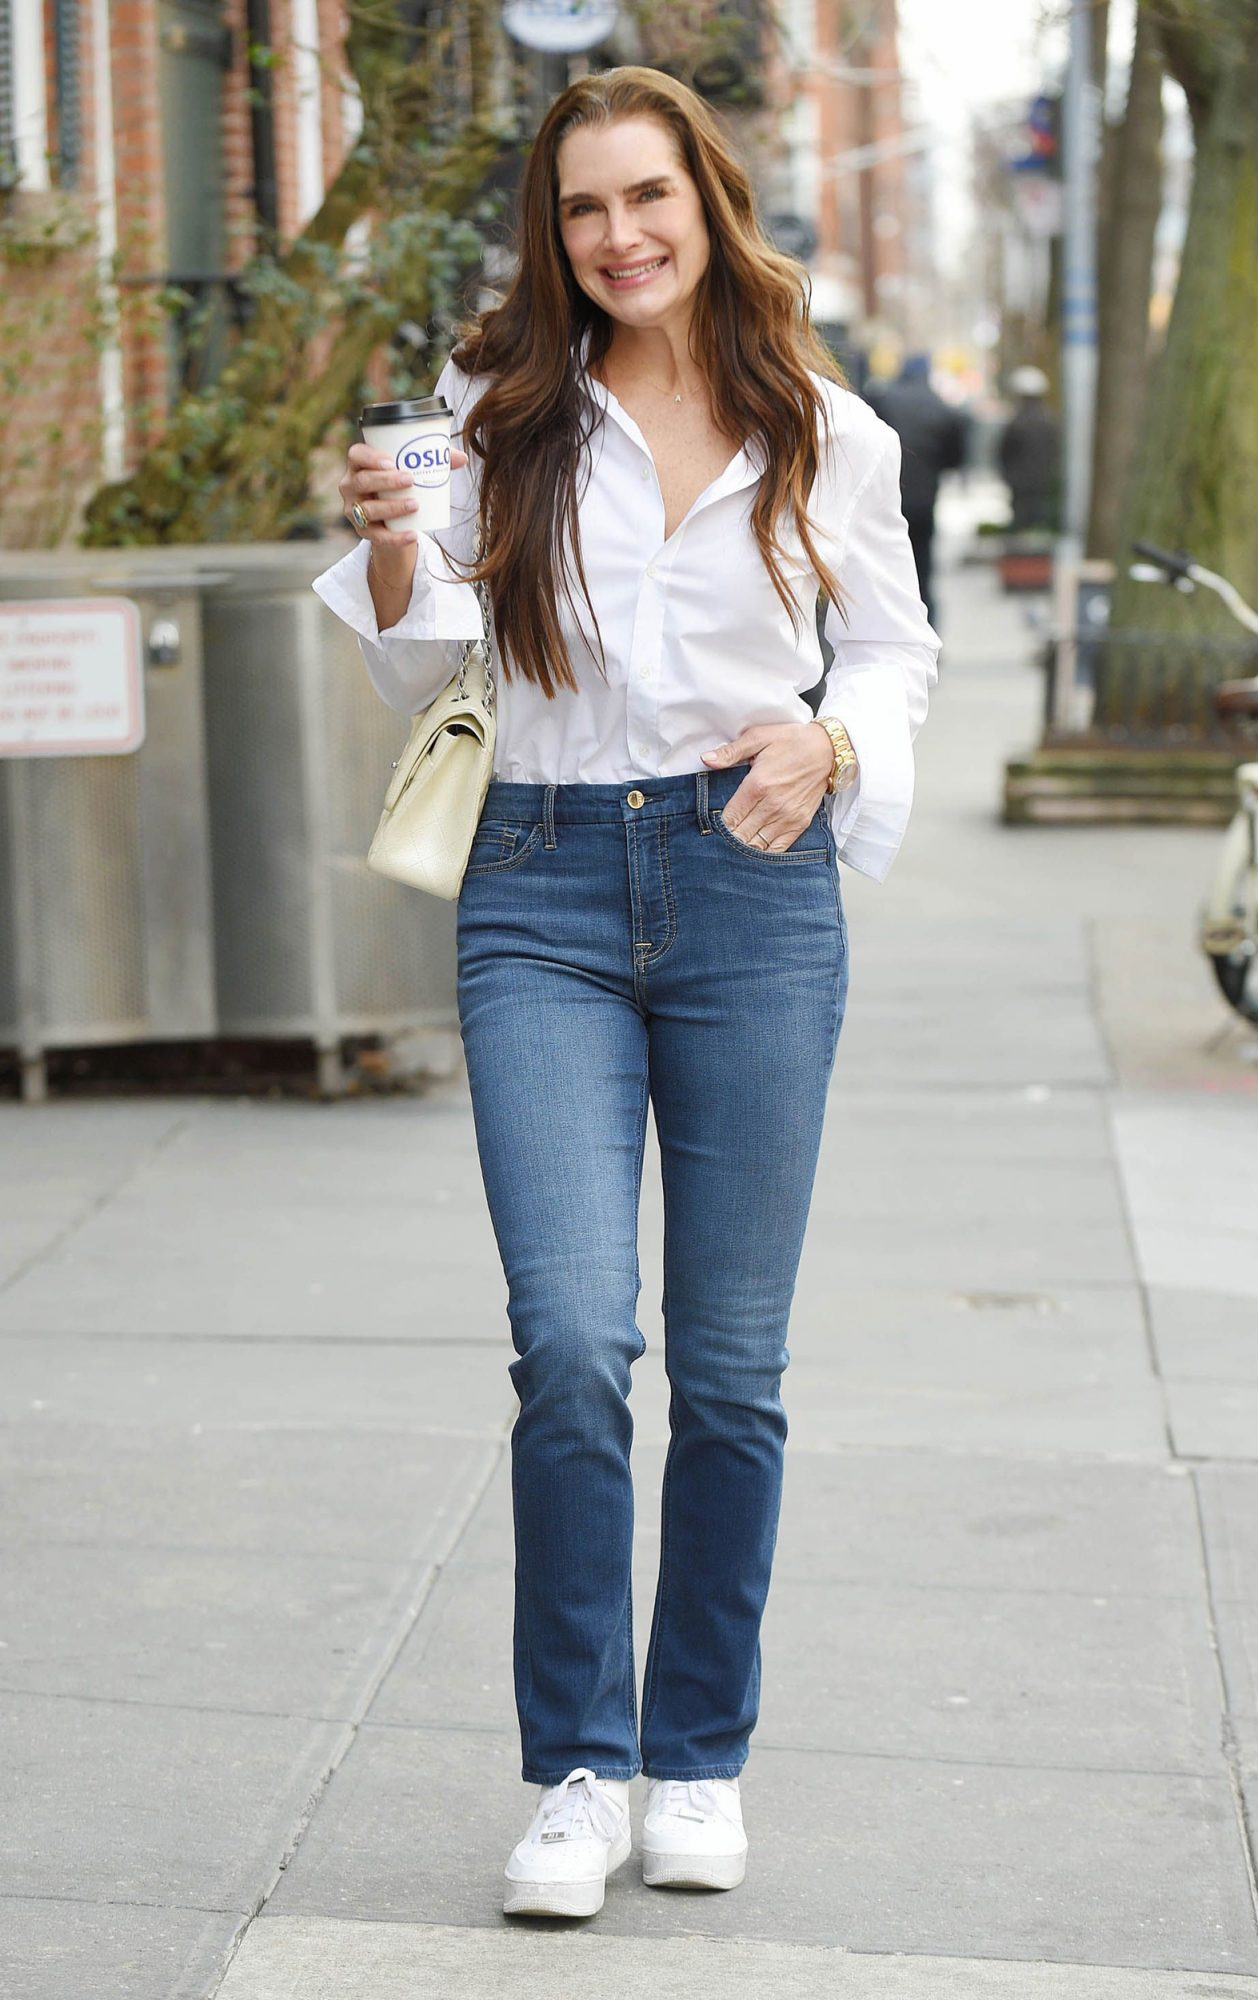 Brooke shield's wore these comfy, under-$100 jeans in the most classic way